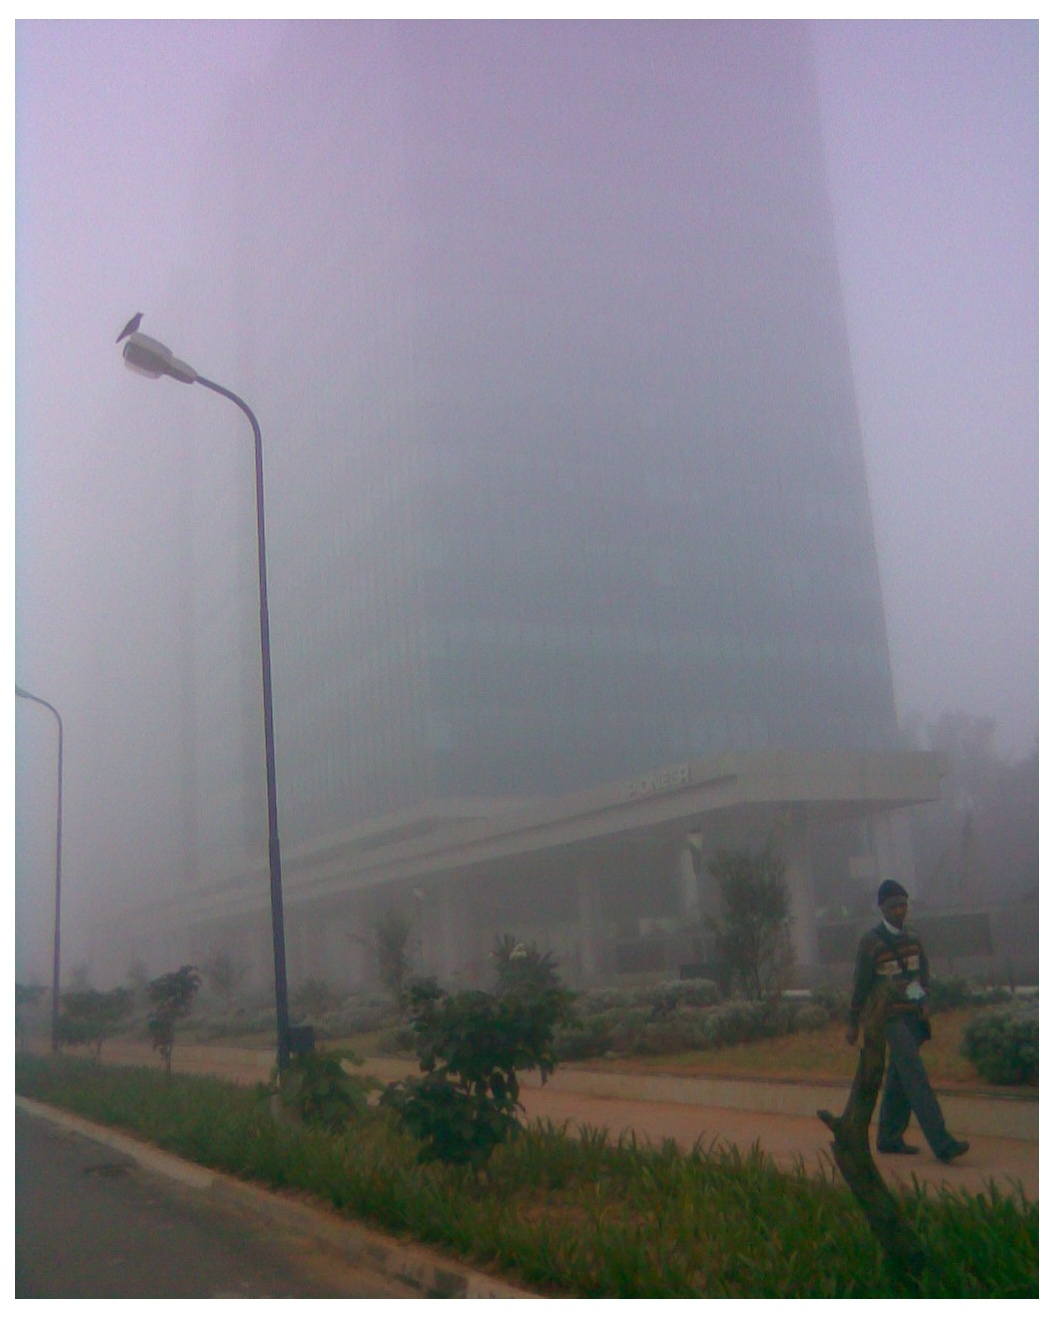 The 'Creator' building (TCS) in ITPL - barely visible.